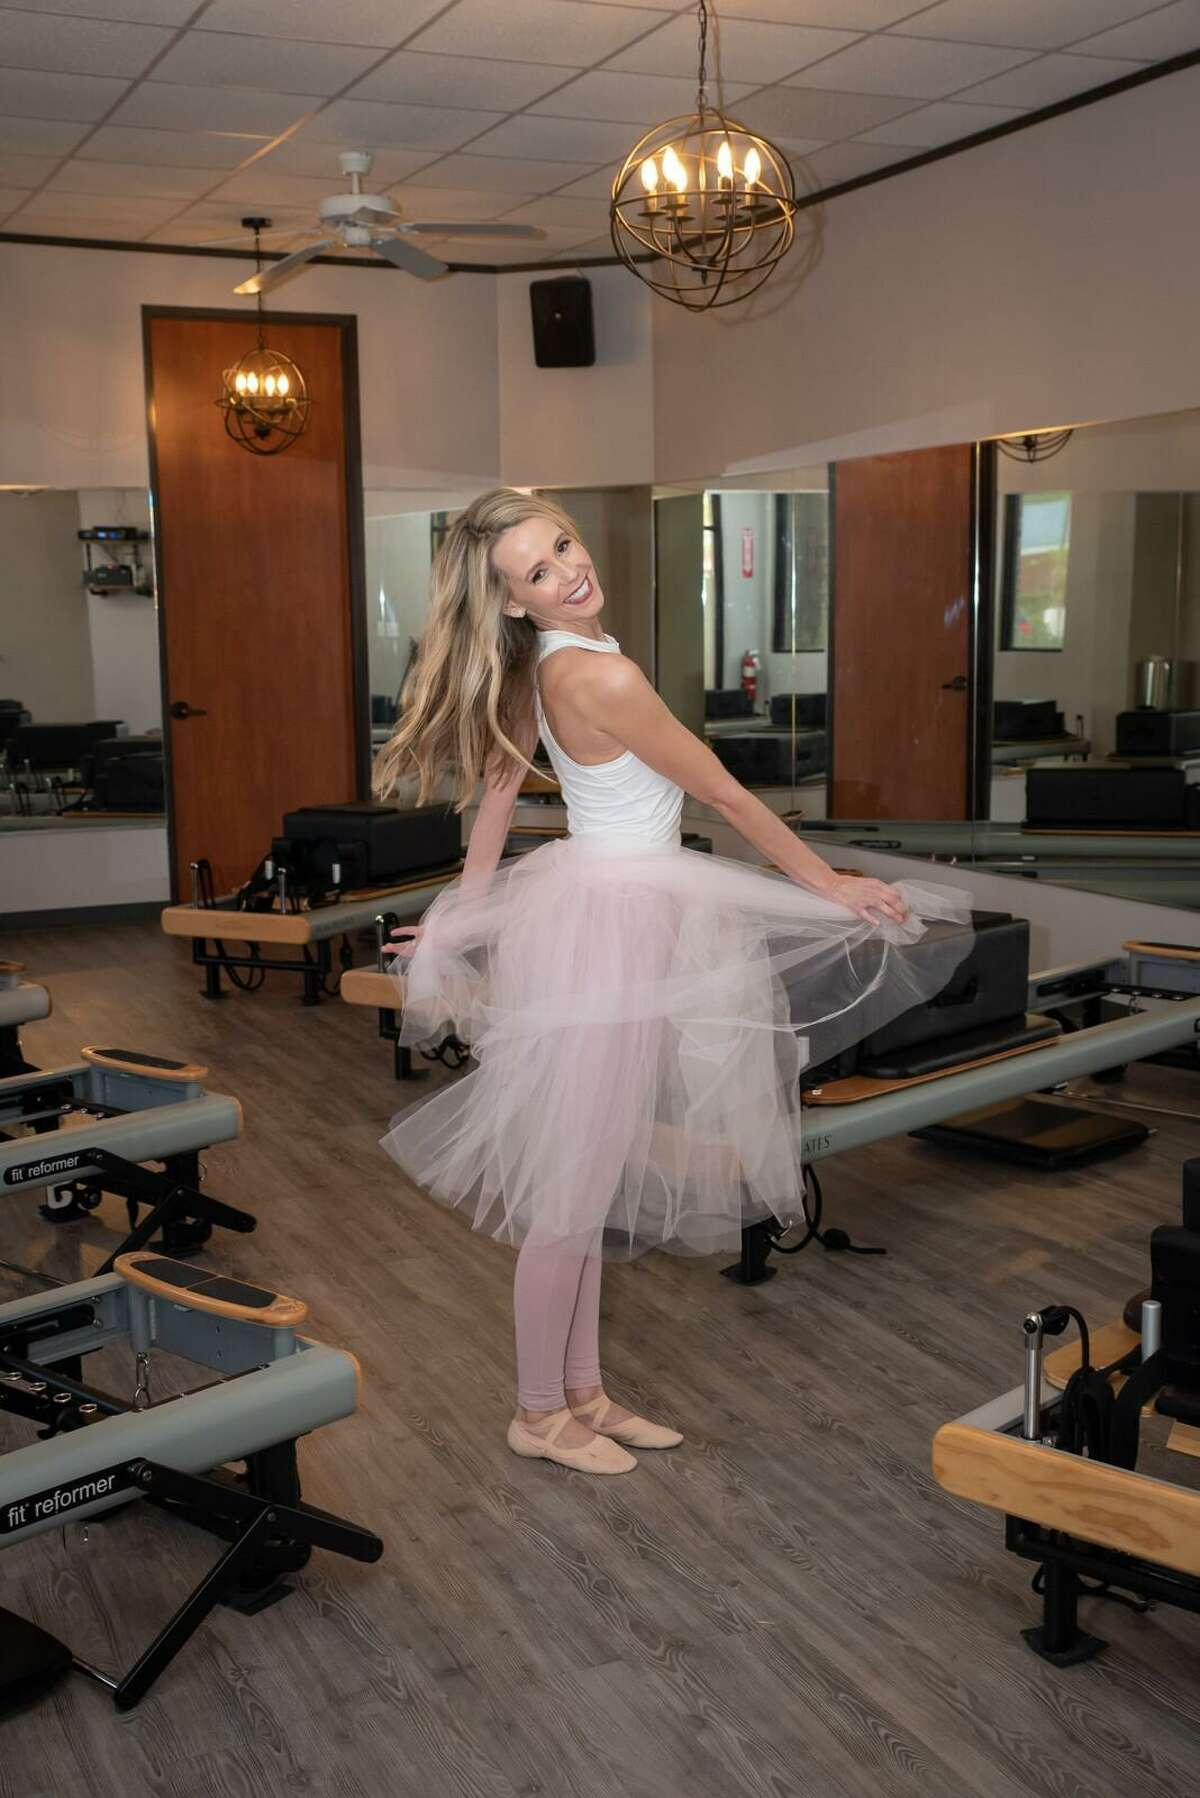 Victoria Simo is the owner of Ballet and Pilates by Victoria, at 15544 Ridge Park Drive in northwest Houston.